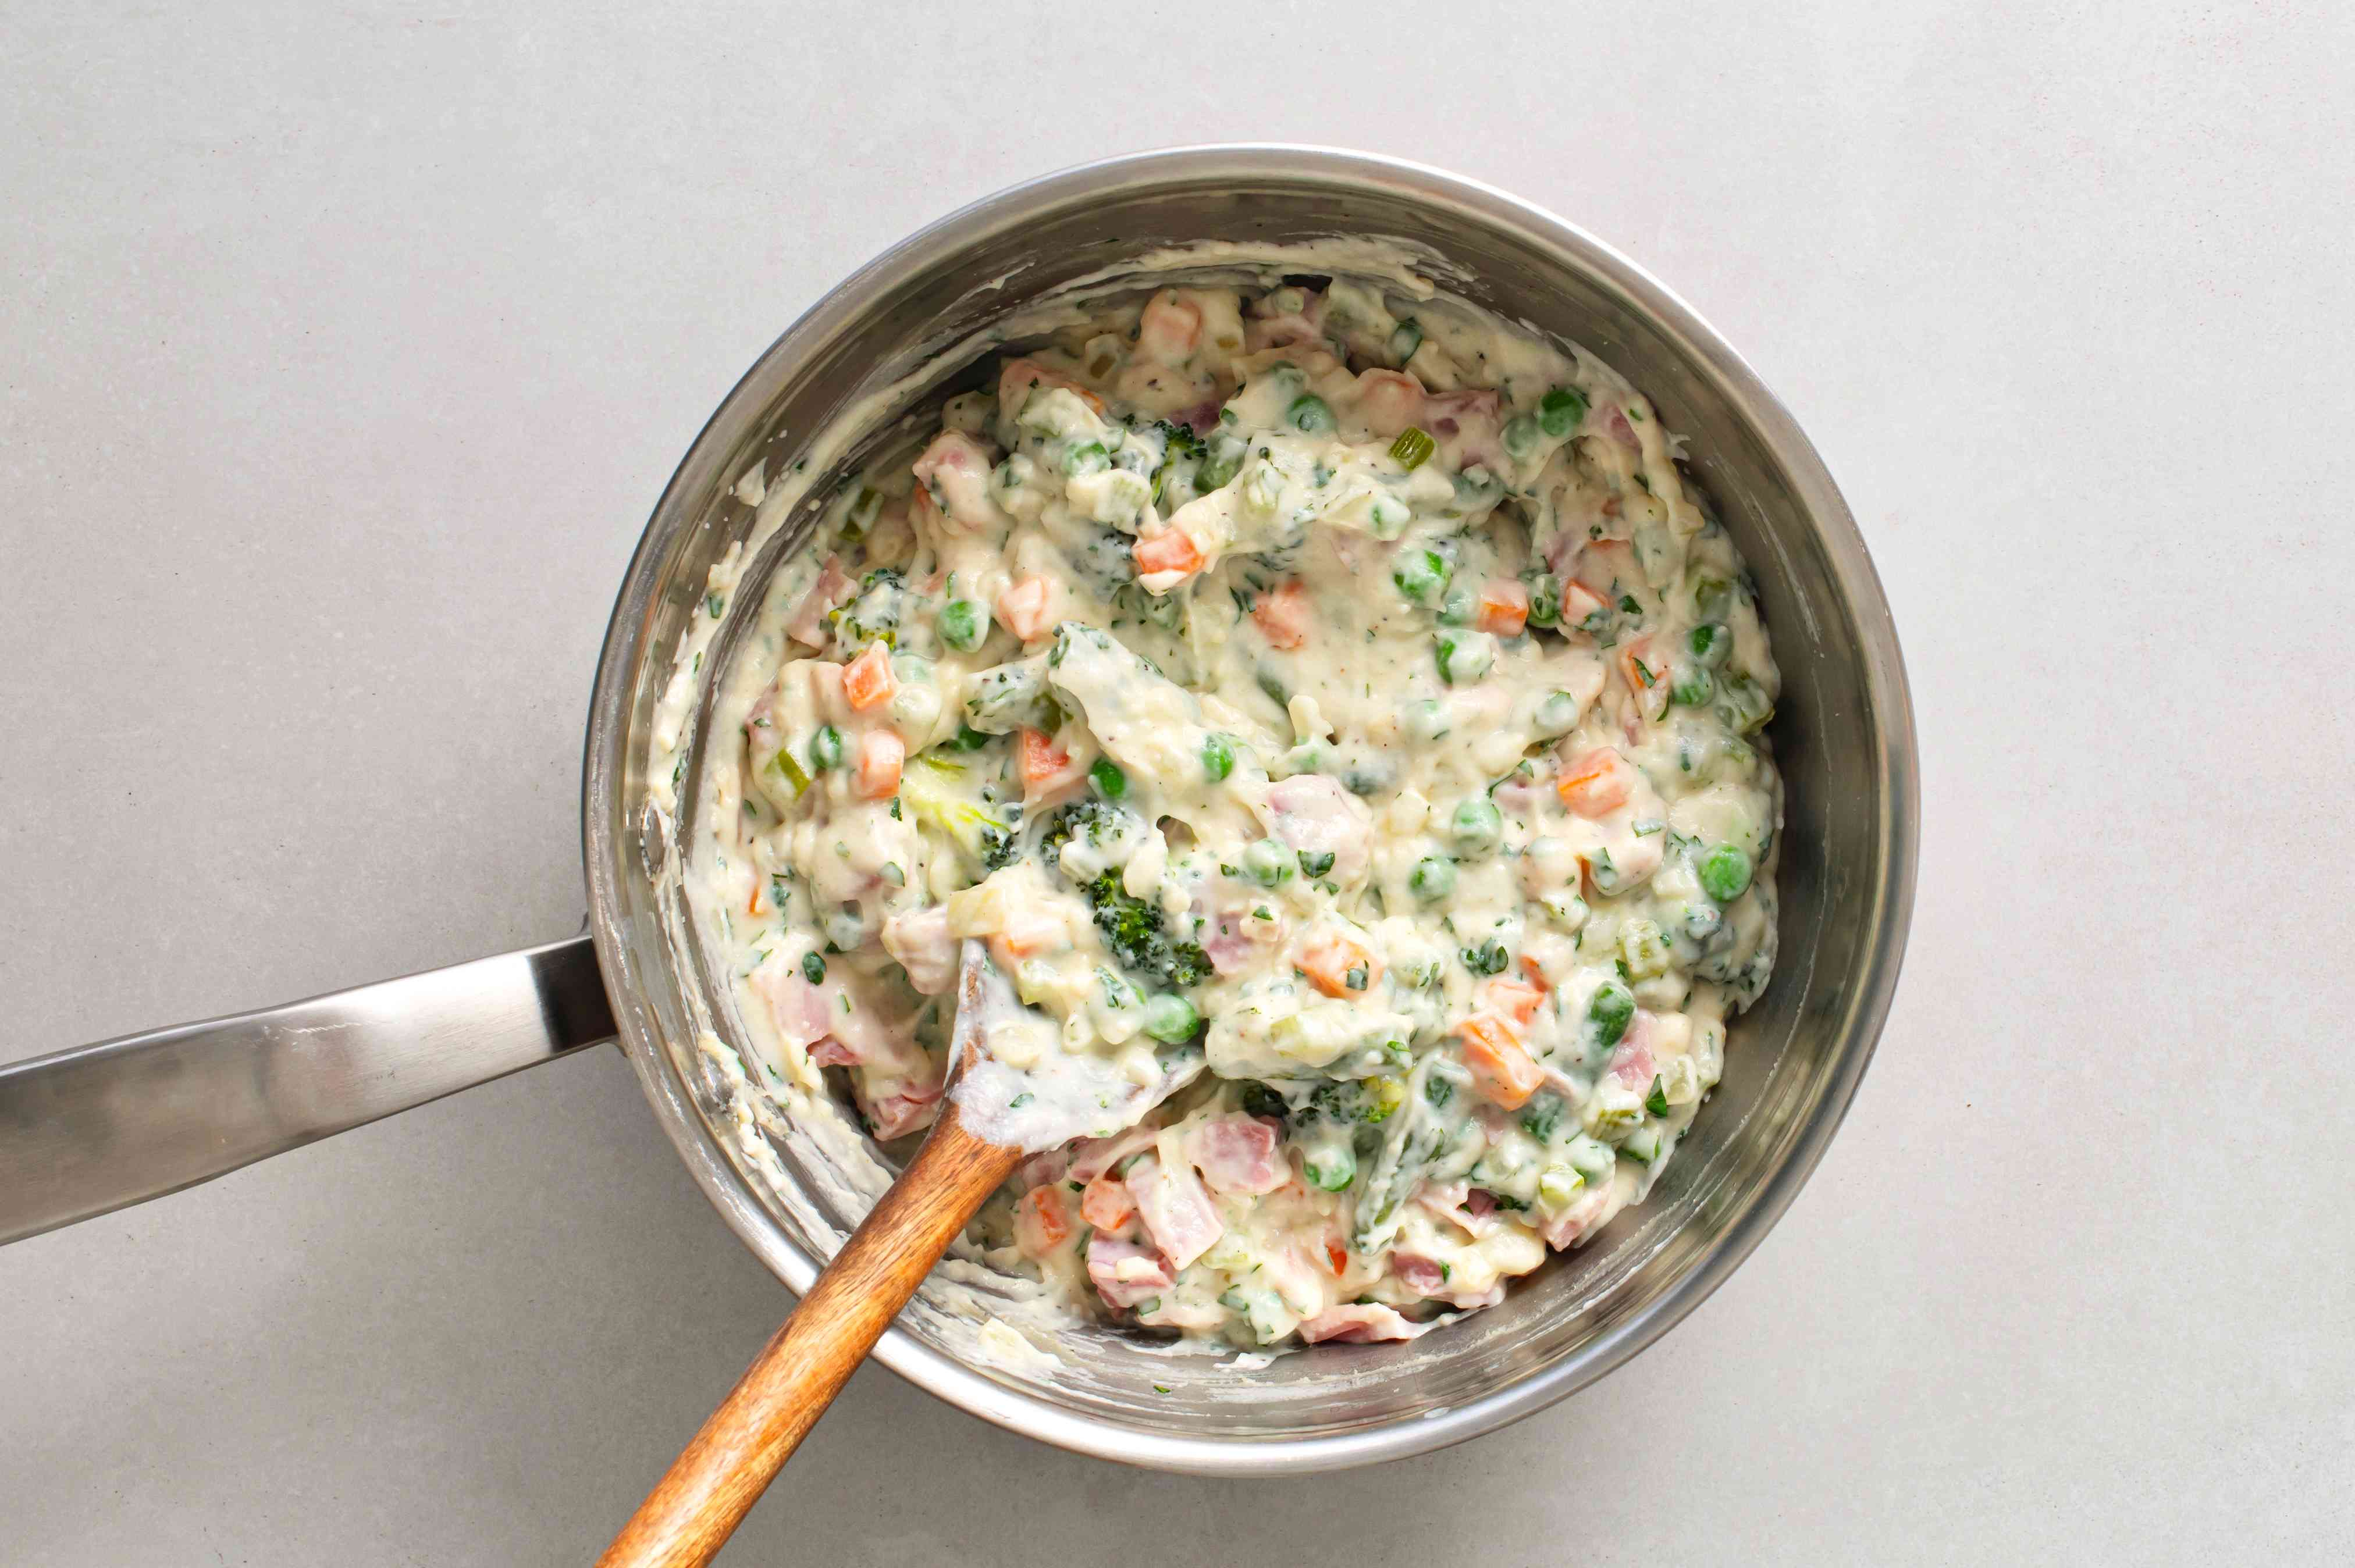 add the parsley and the ham pieces to the mixture in the saucepan